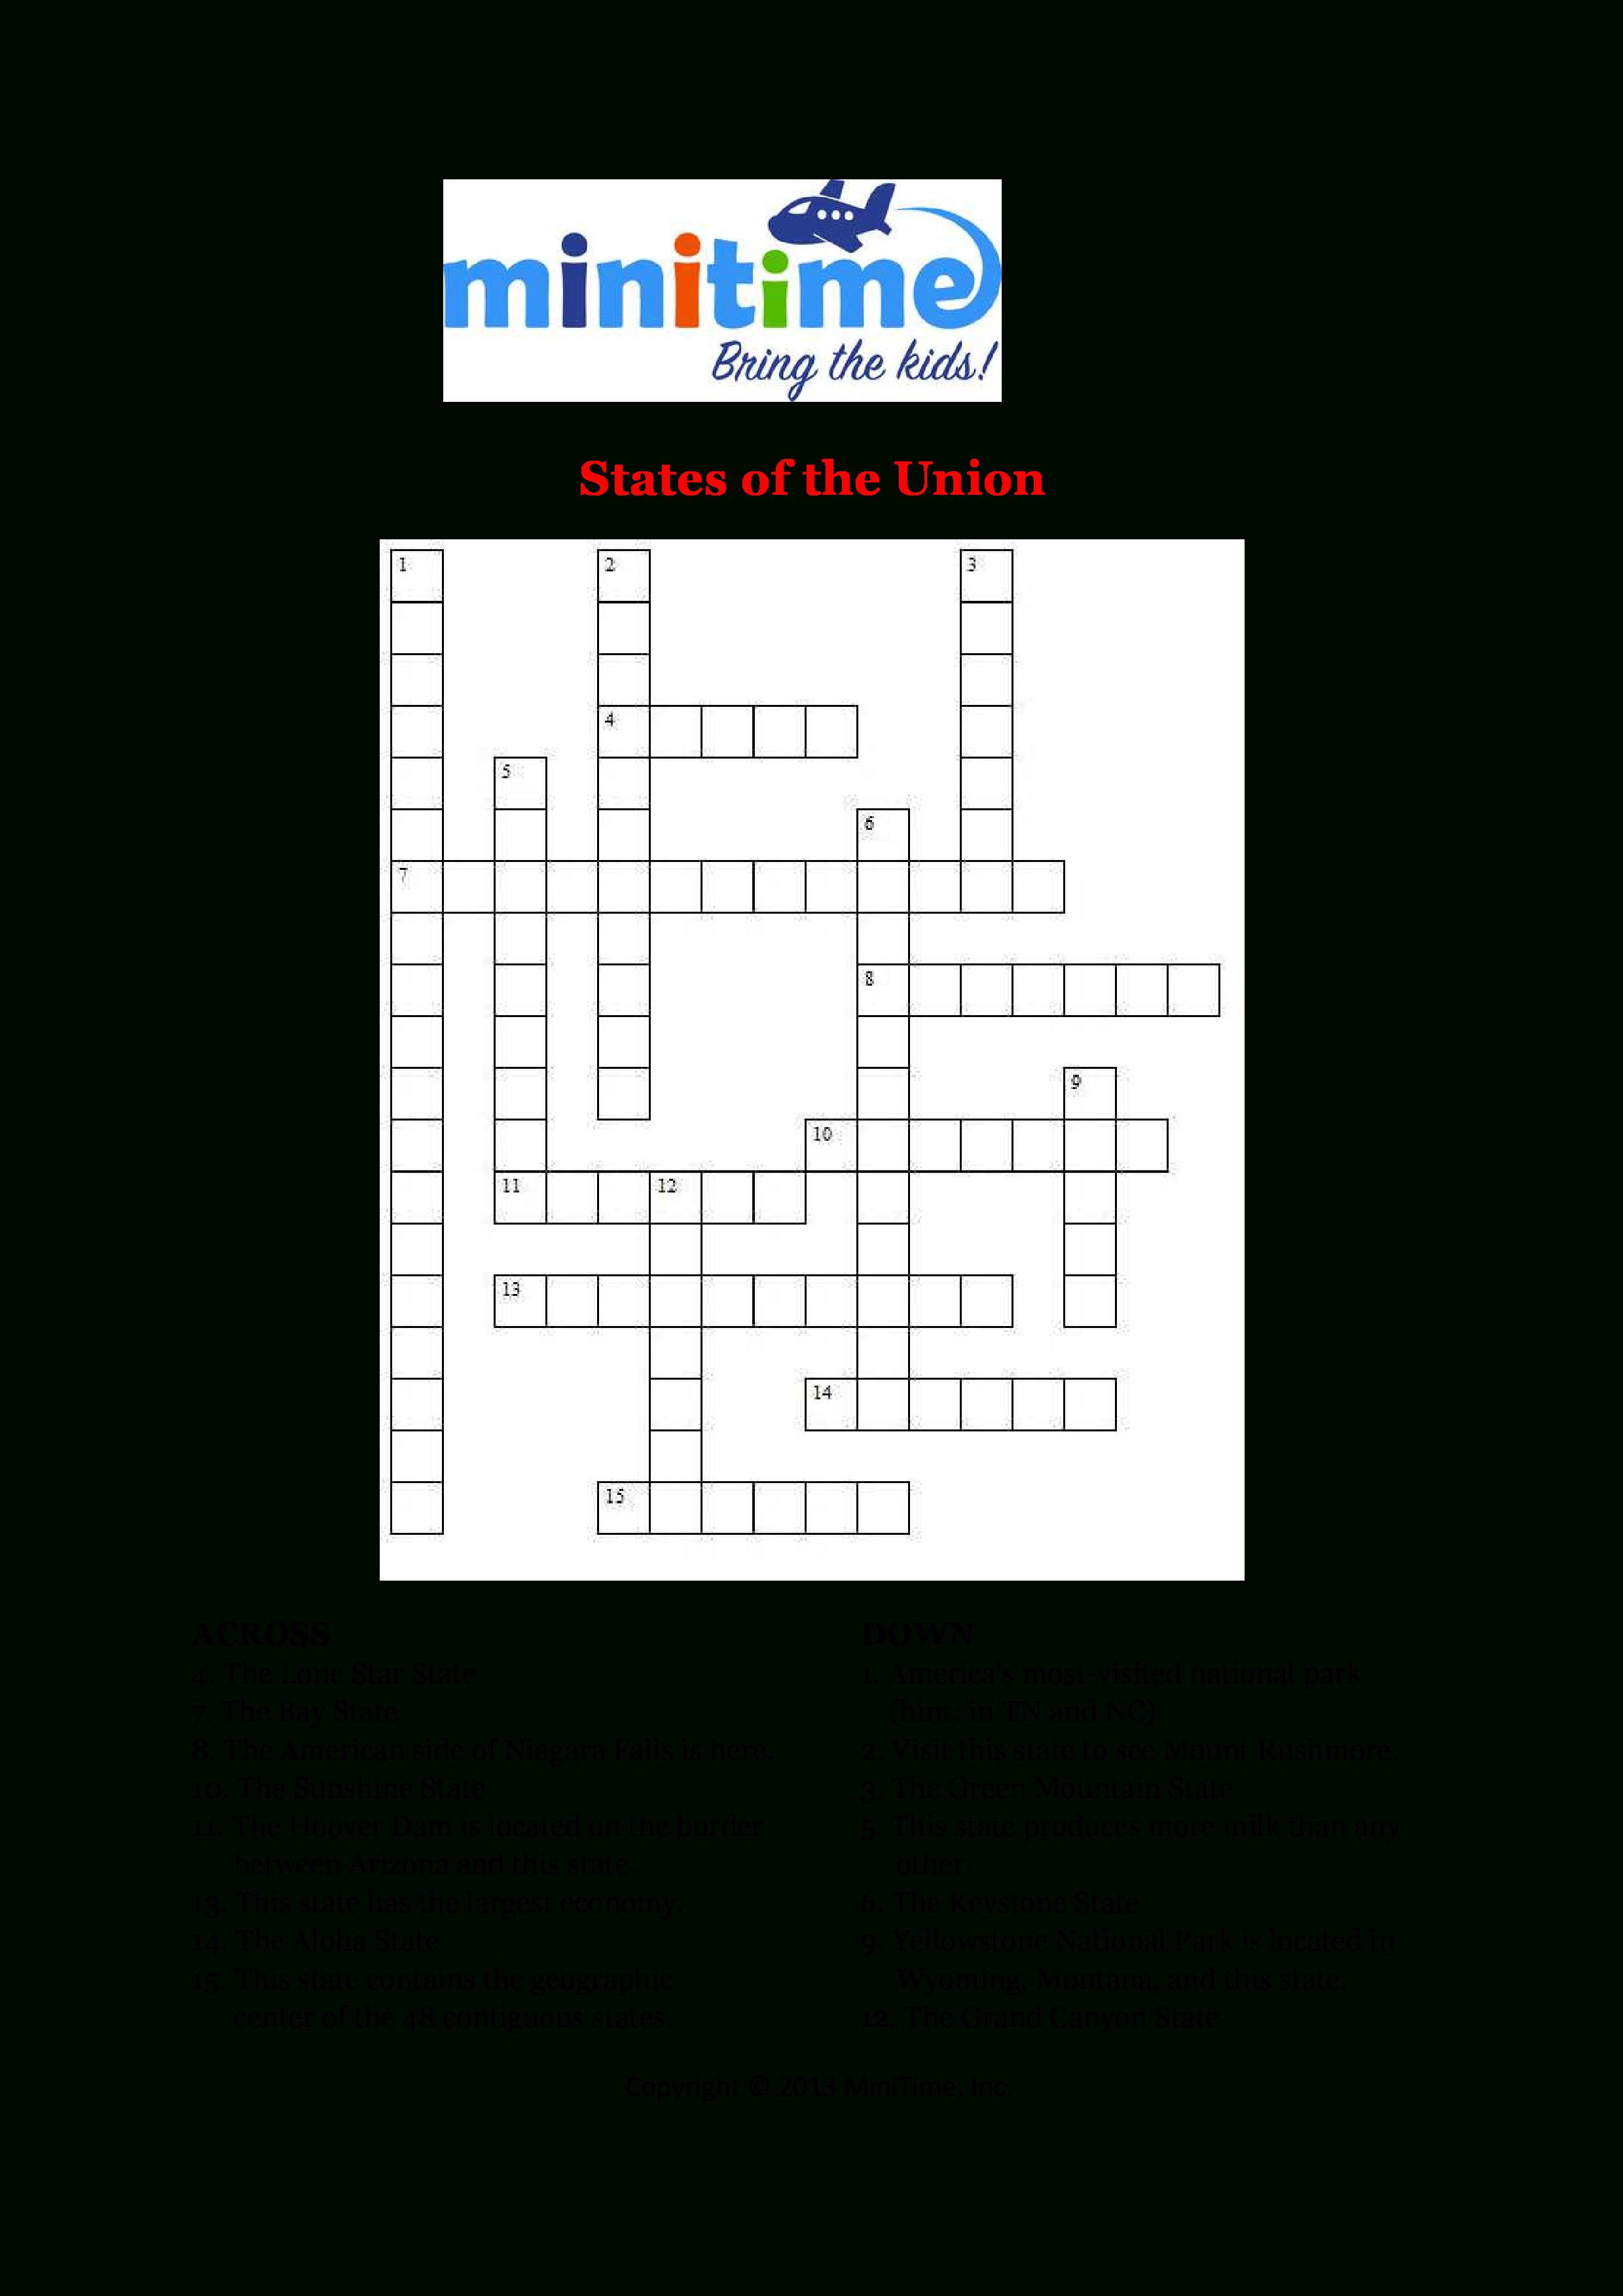 Us States Fun Facts Crossword Puzzles | Free Printable Travel - Disney Crossword Puzzles Printable